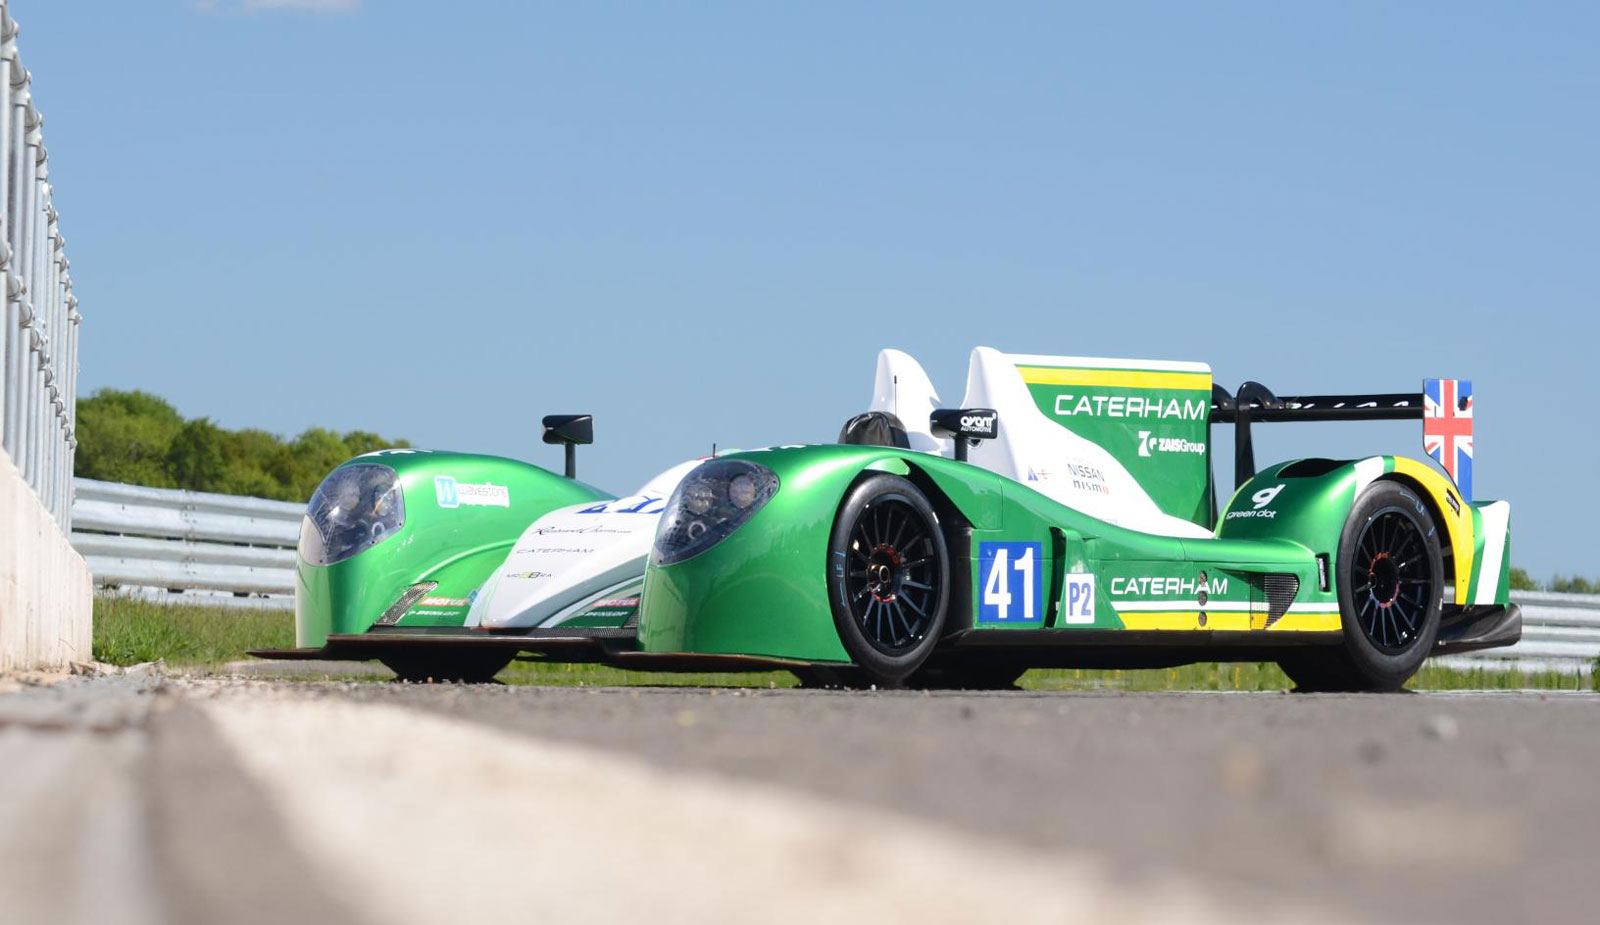 Caterham Confirms 2013 Entry For 24 Hour Of Le Mans